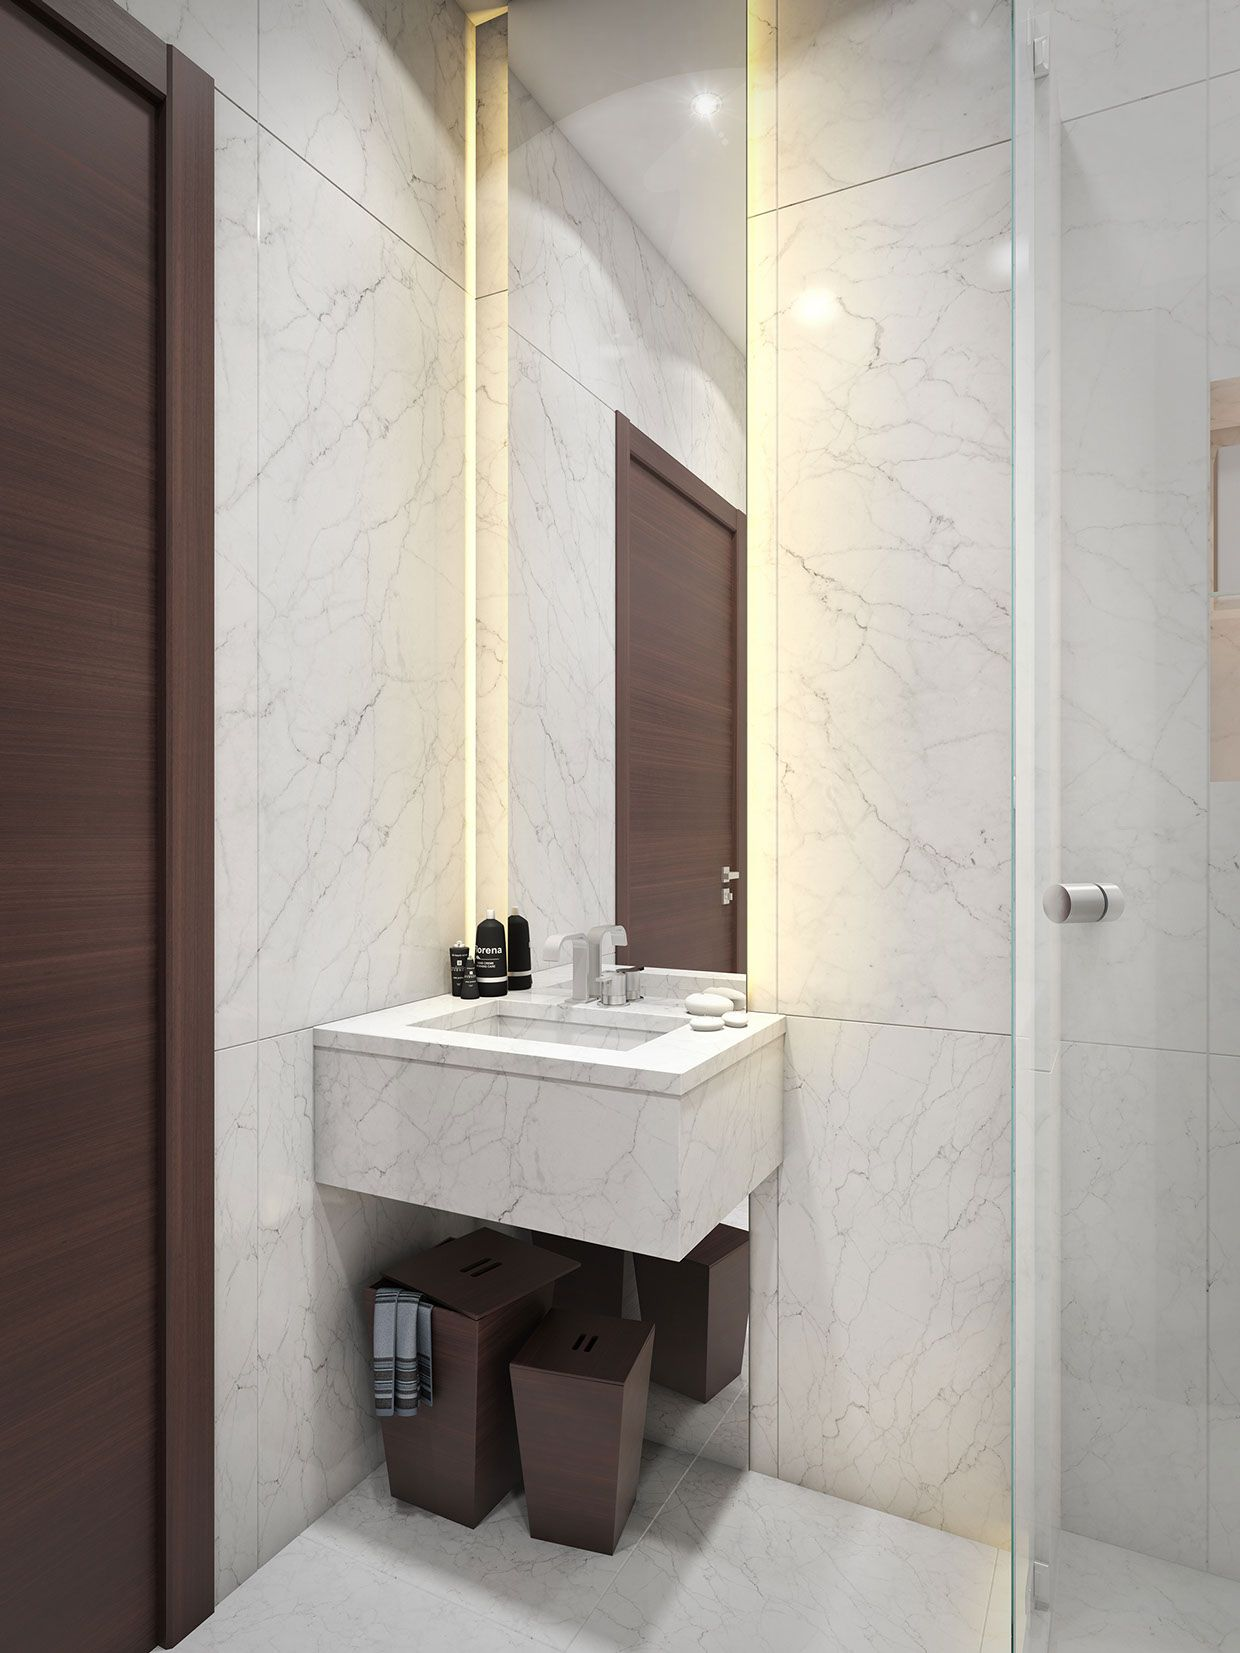 A Super Small 40 Square Meter Home  Small Bathroom Marbles And Captivating 40 Sq Ft Bathroom Design Design Ideas